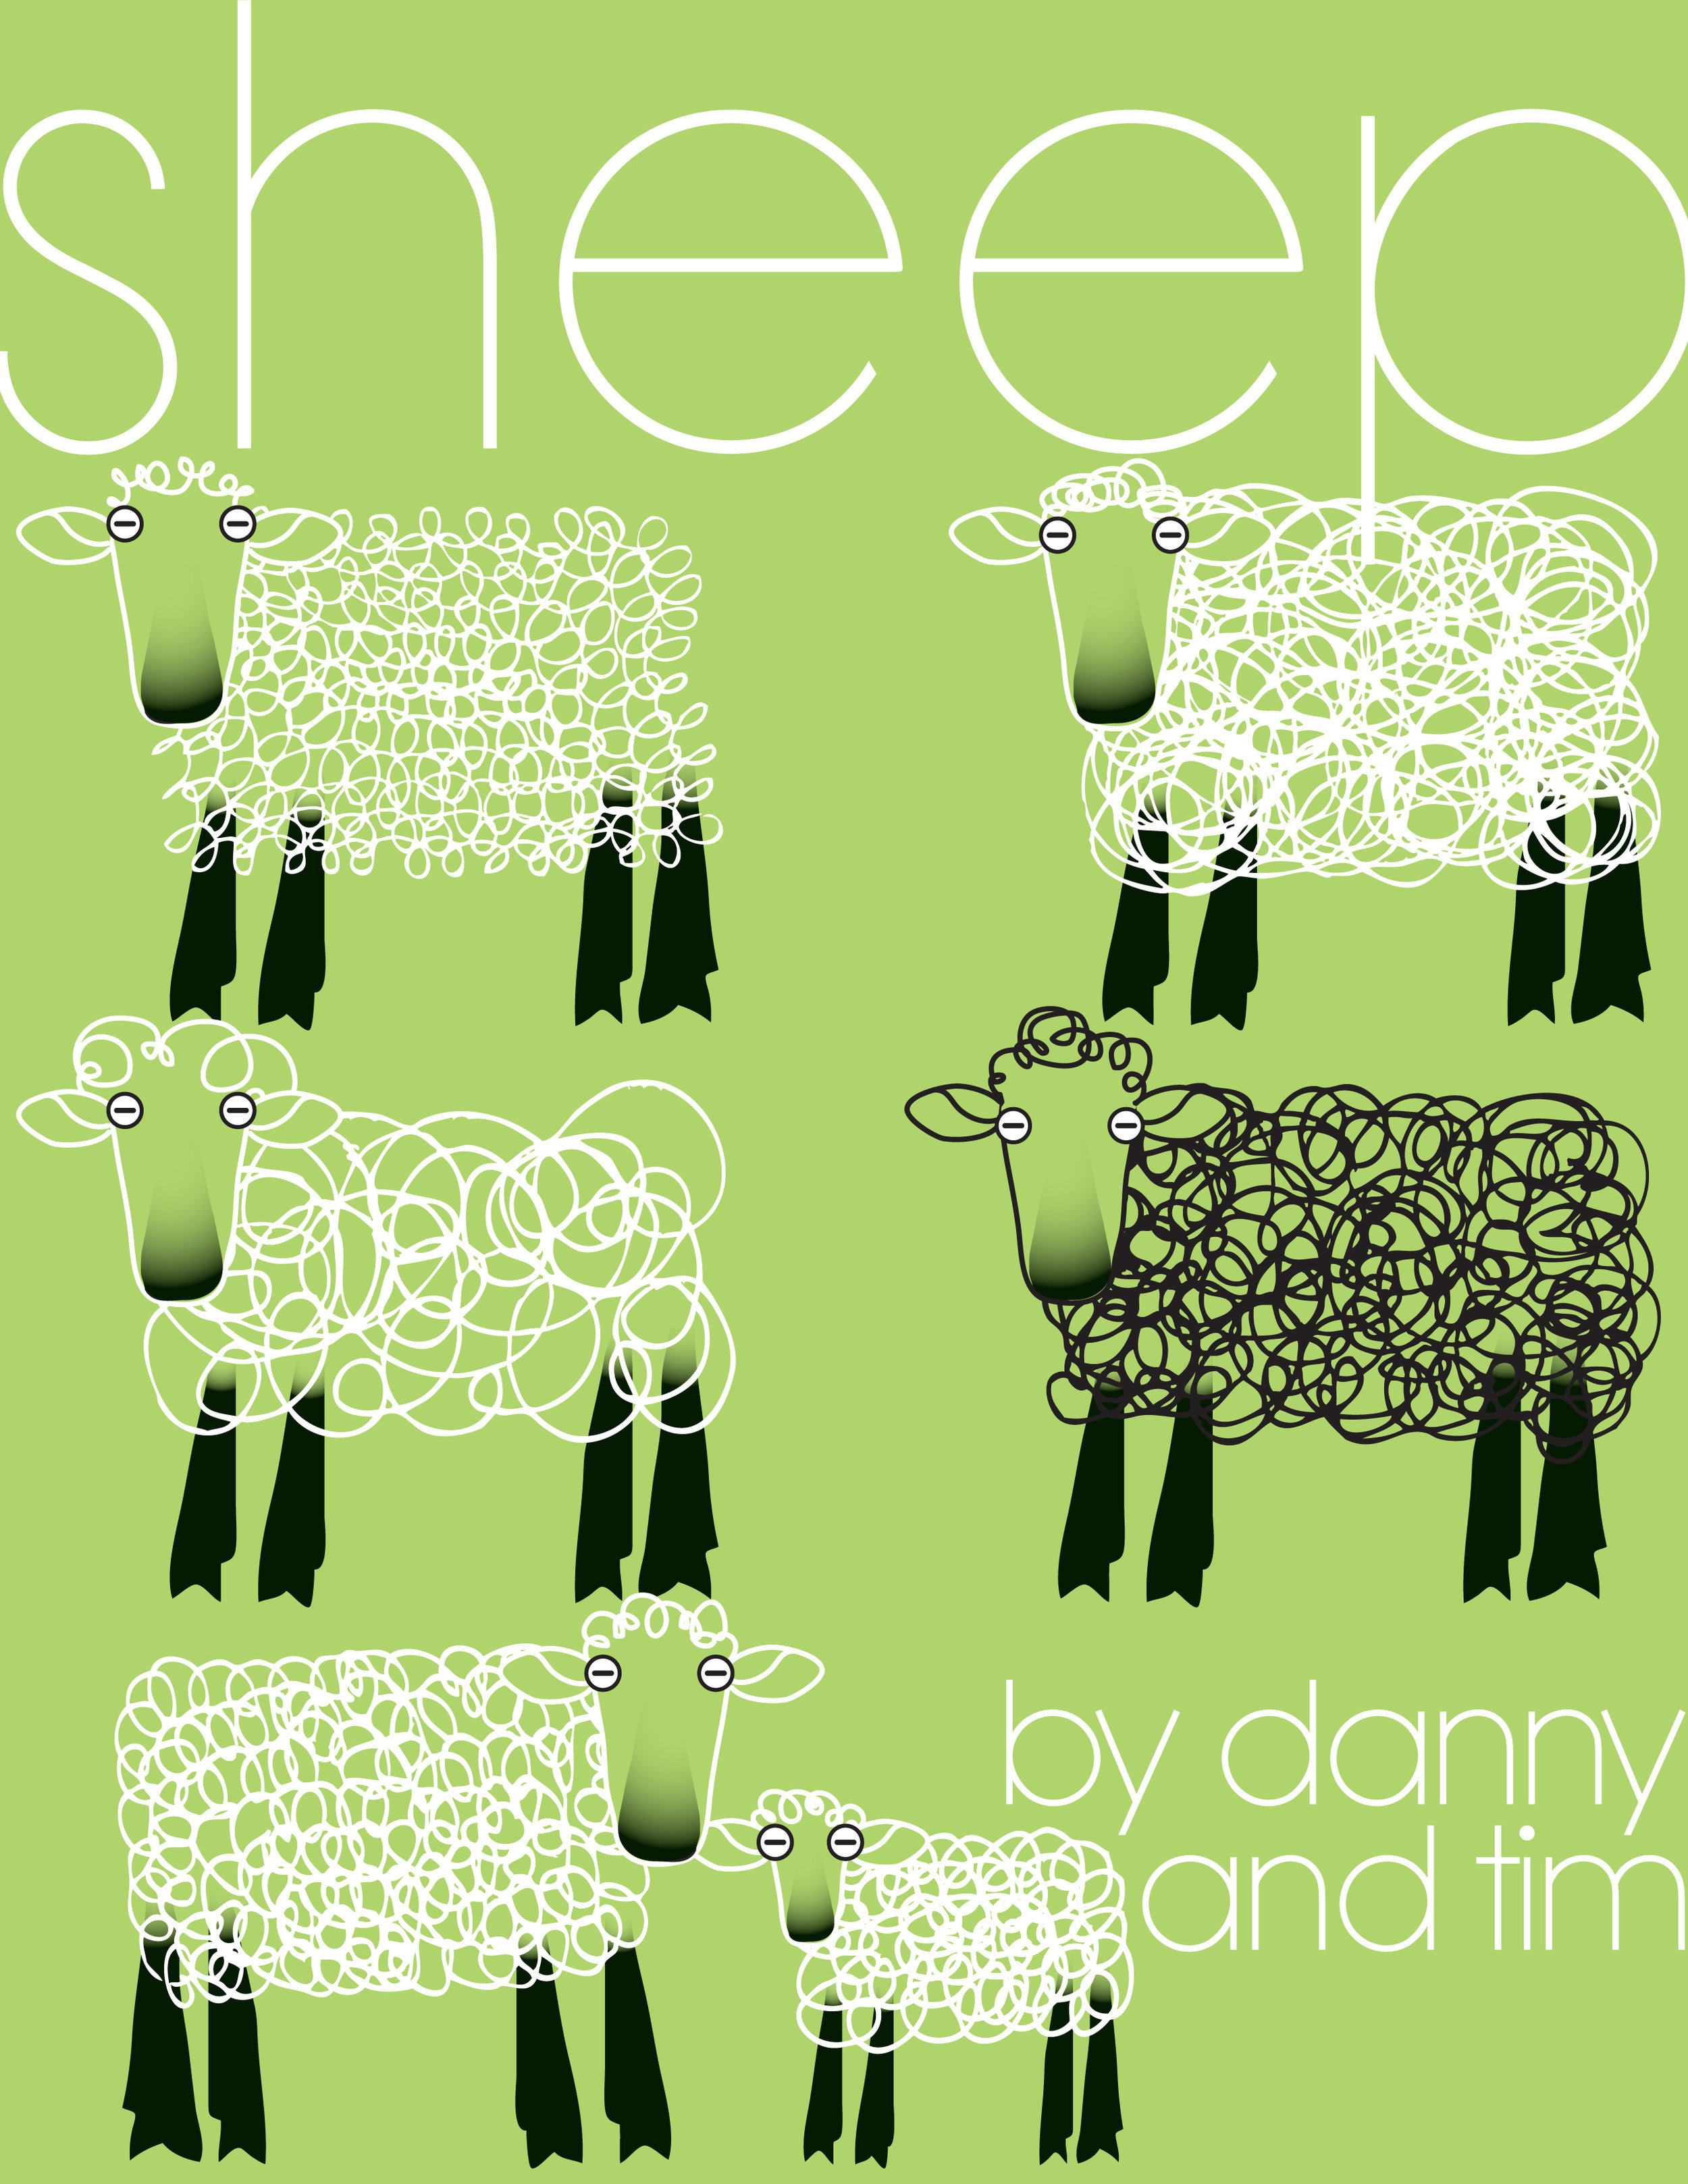 Sheep Sleep Book 2-1.jpg